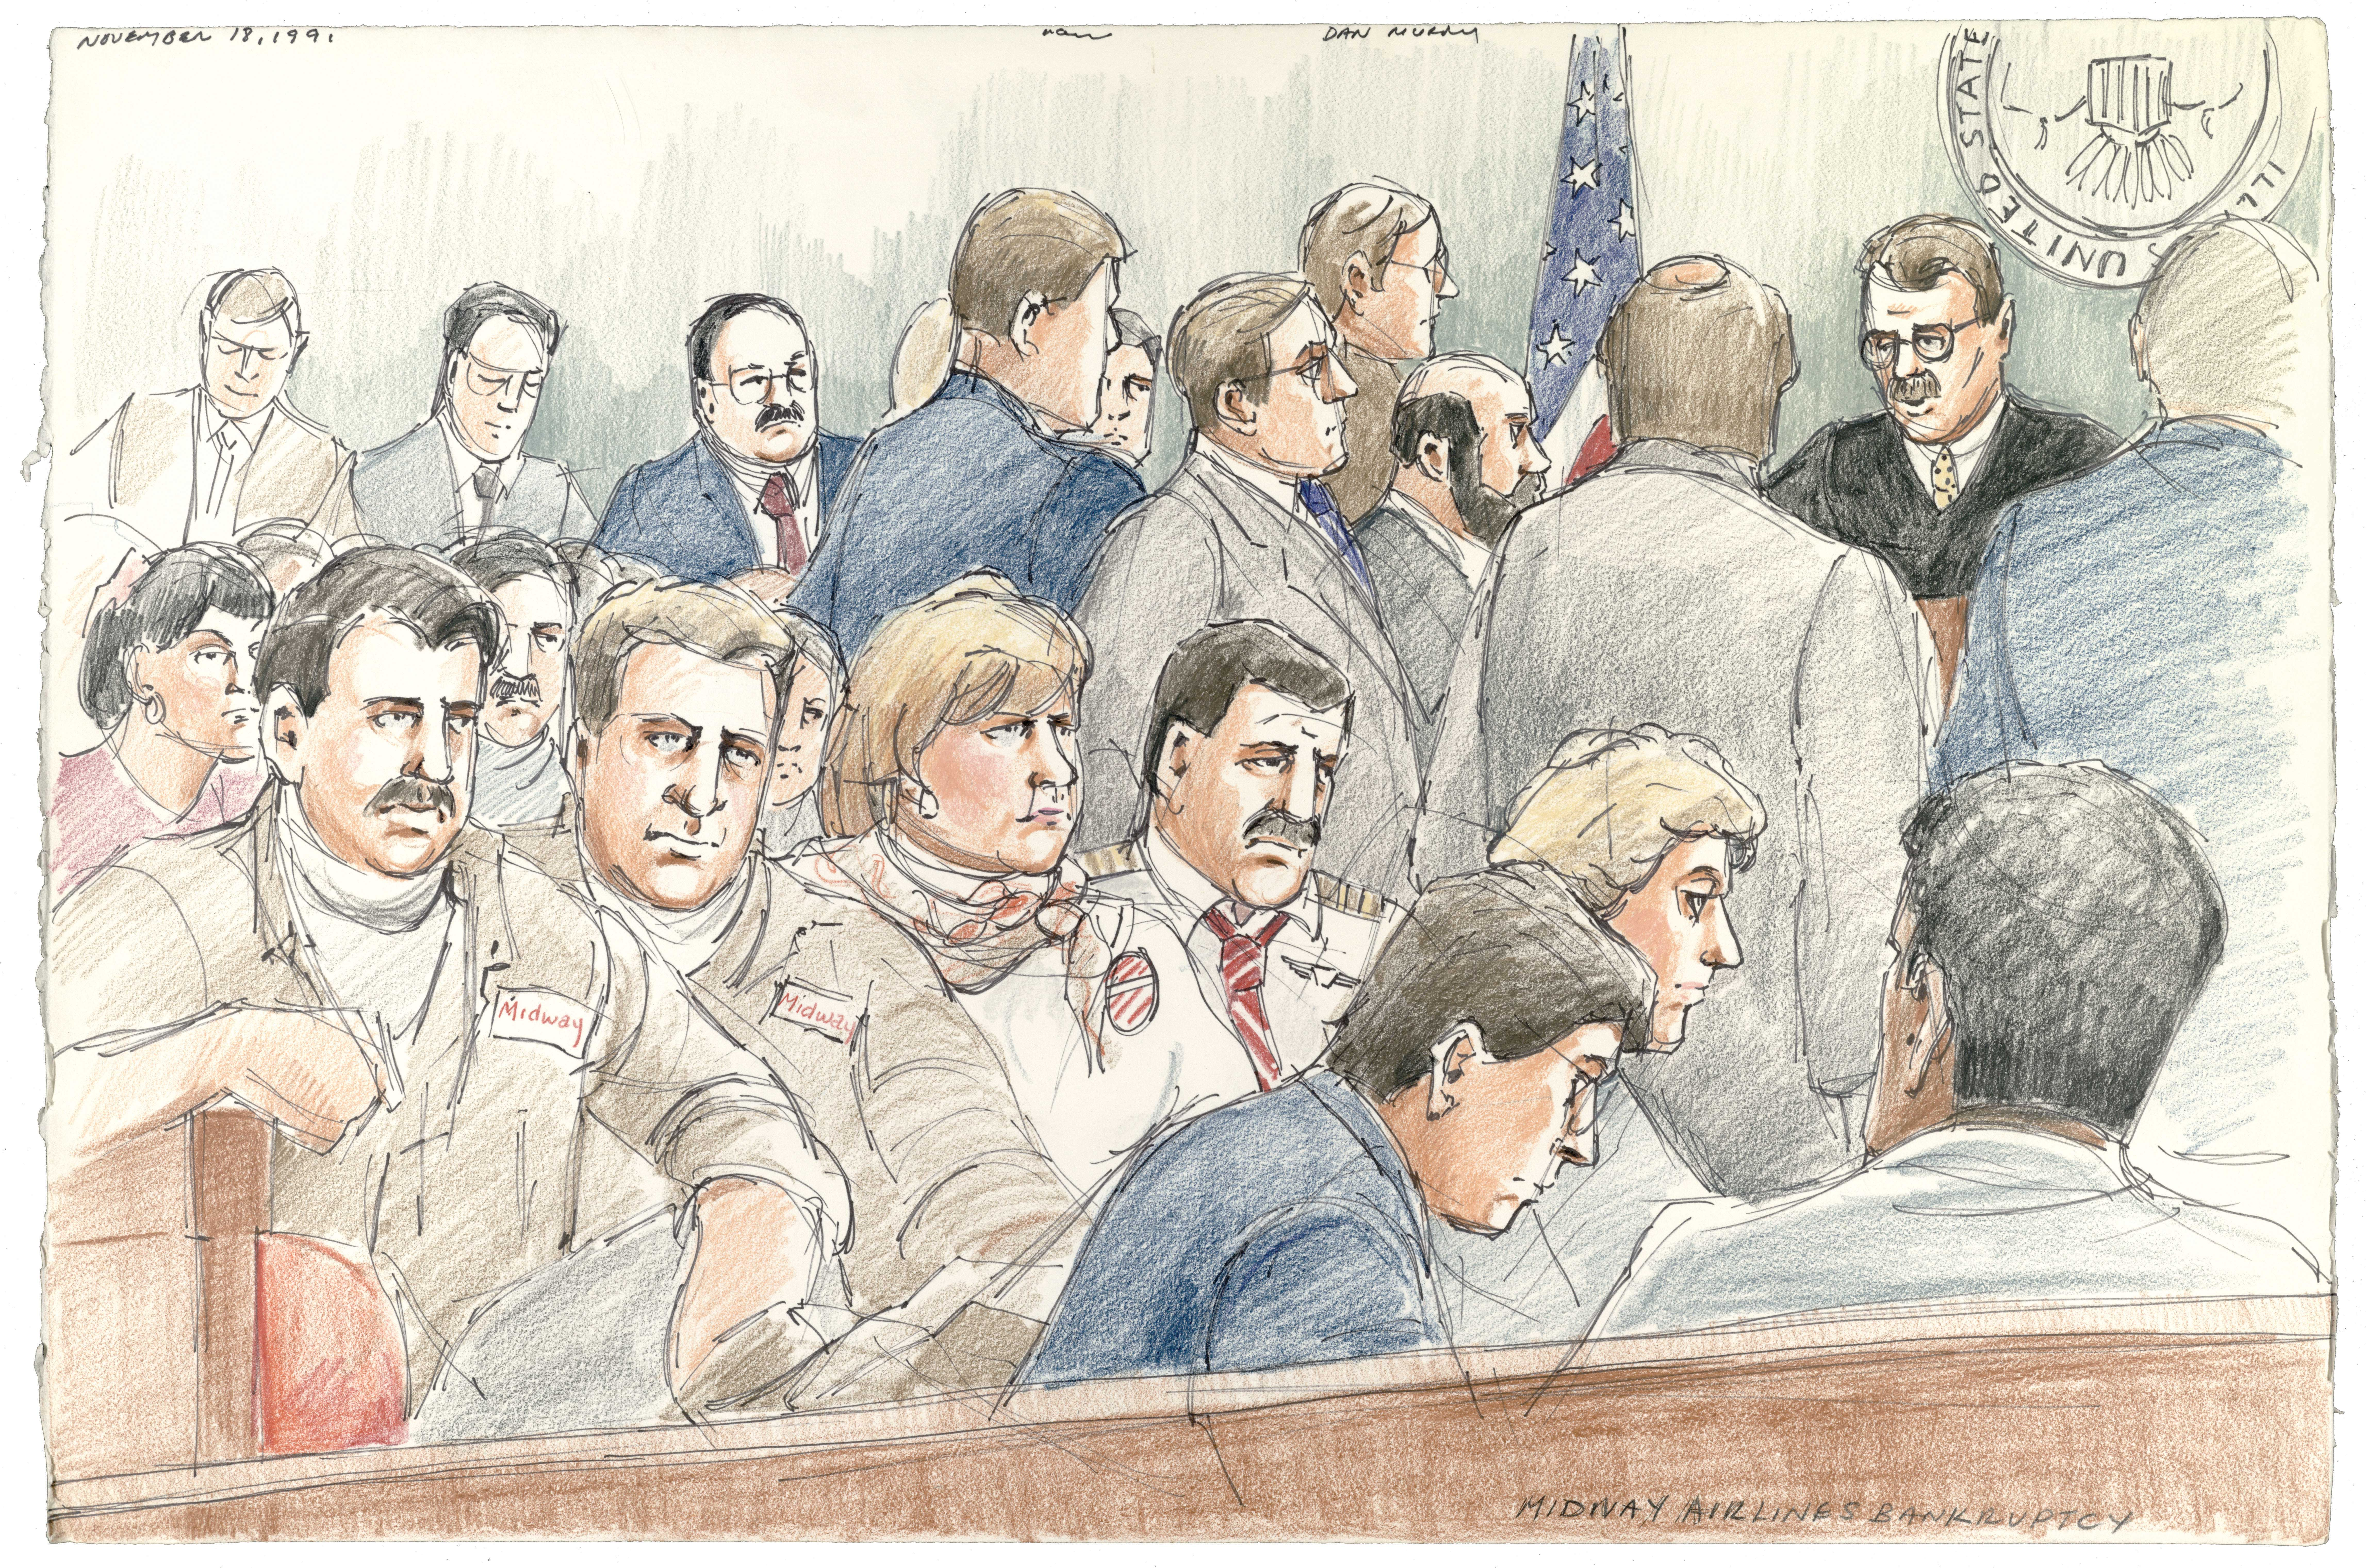 Midway Airlines Bankruptcy Trial, 1991